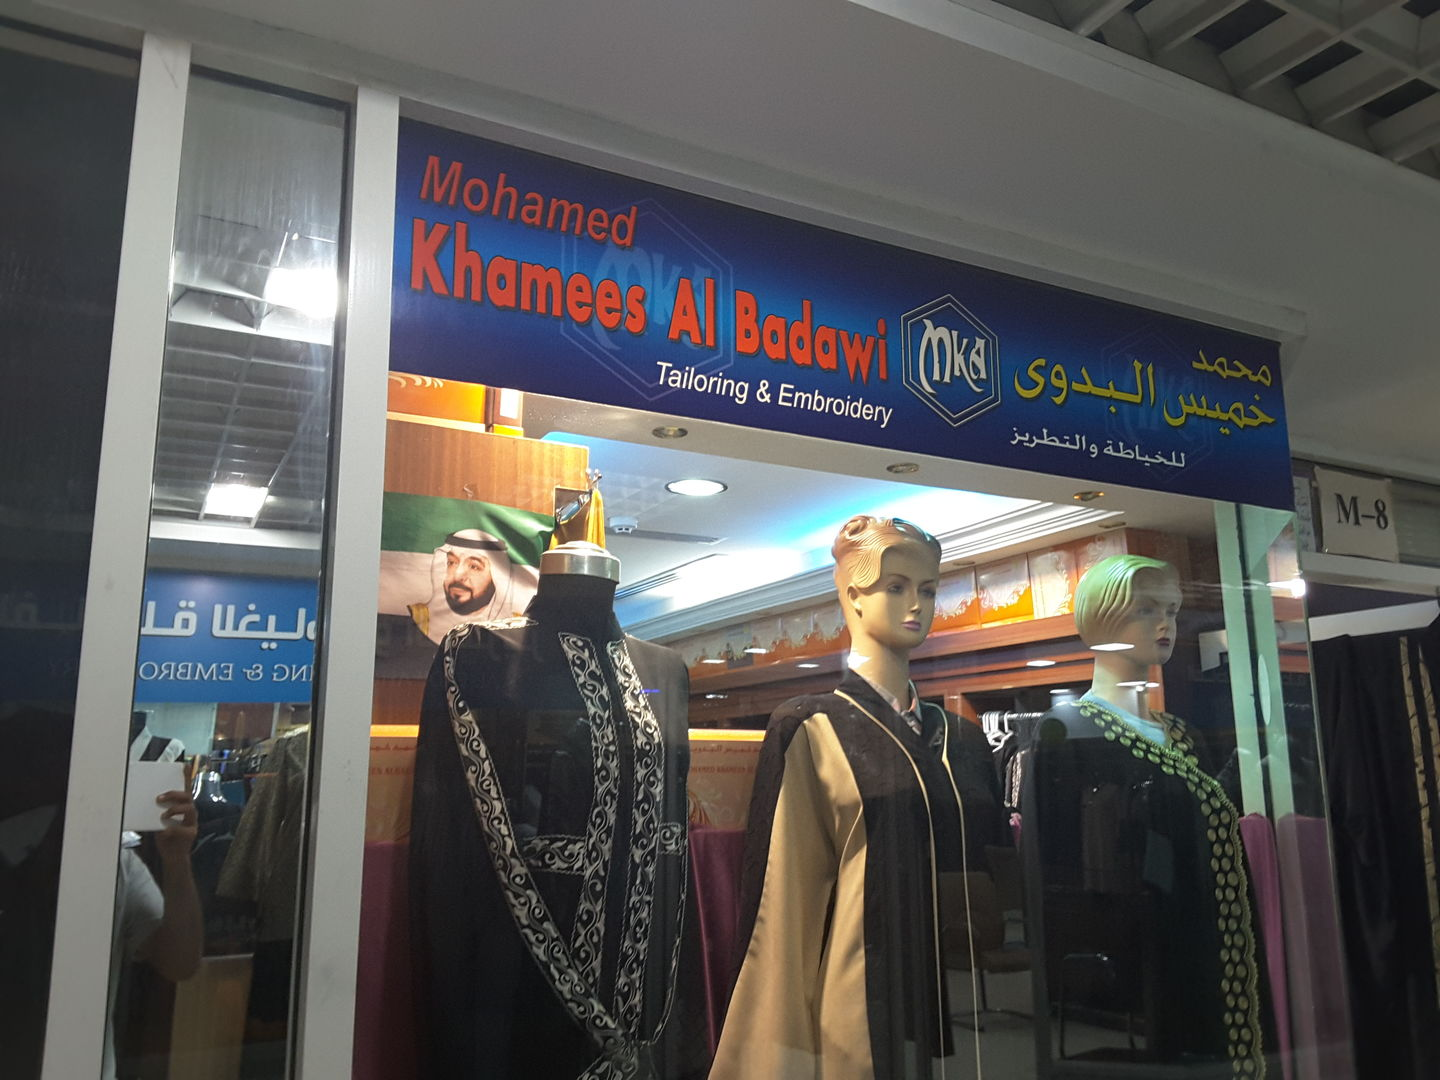 HiDubai-business-mohamed-khamees-albadawi-tailoring-embroidery-shopping-apparel-hor-al-anz-east-dubai-2